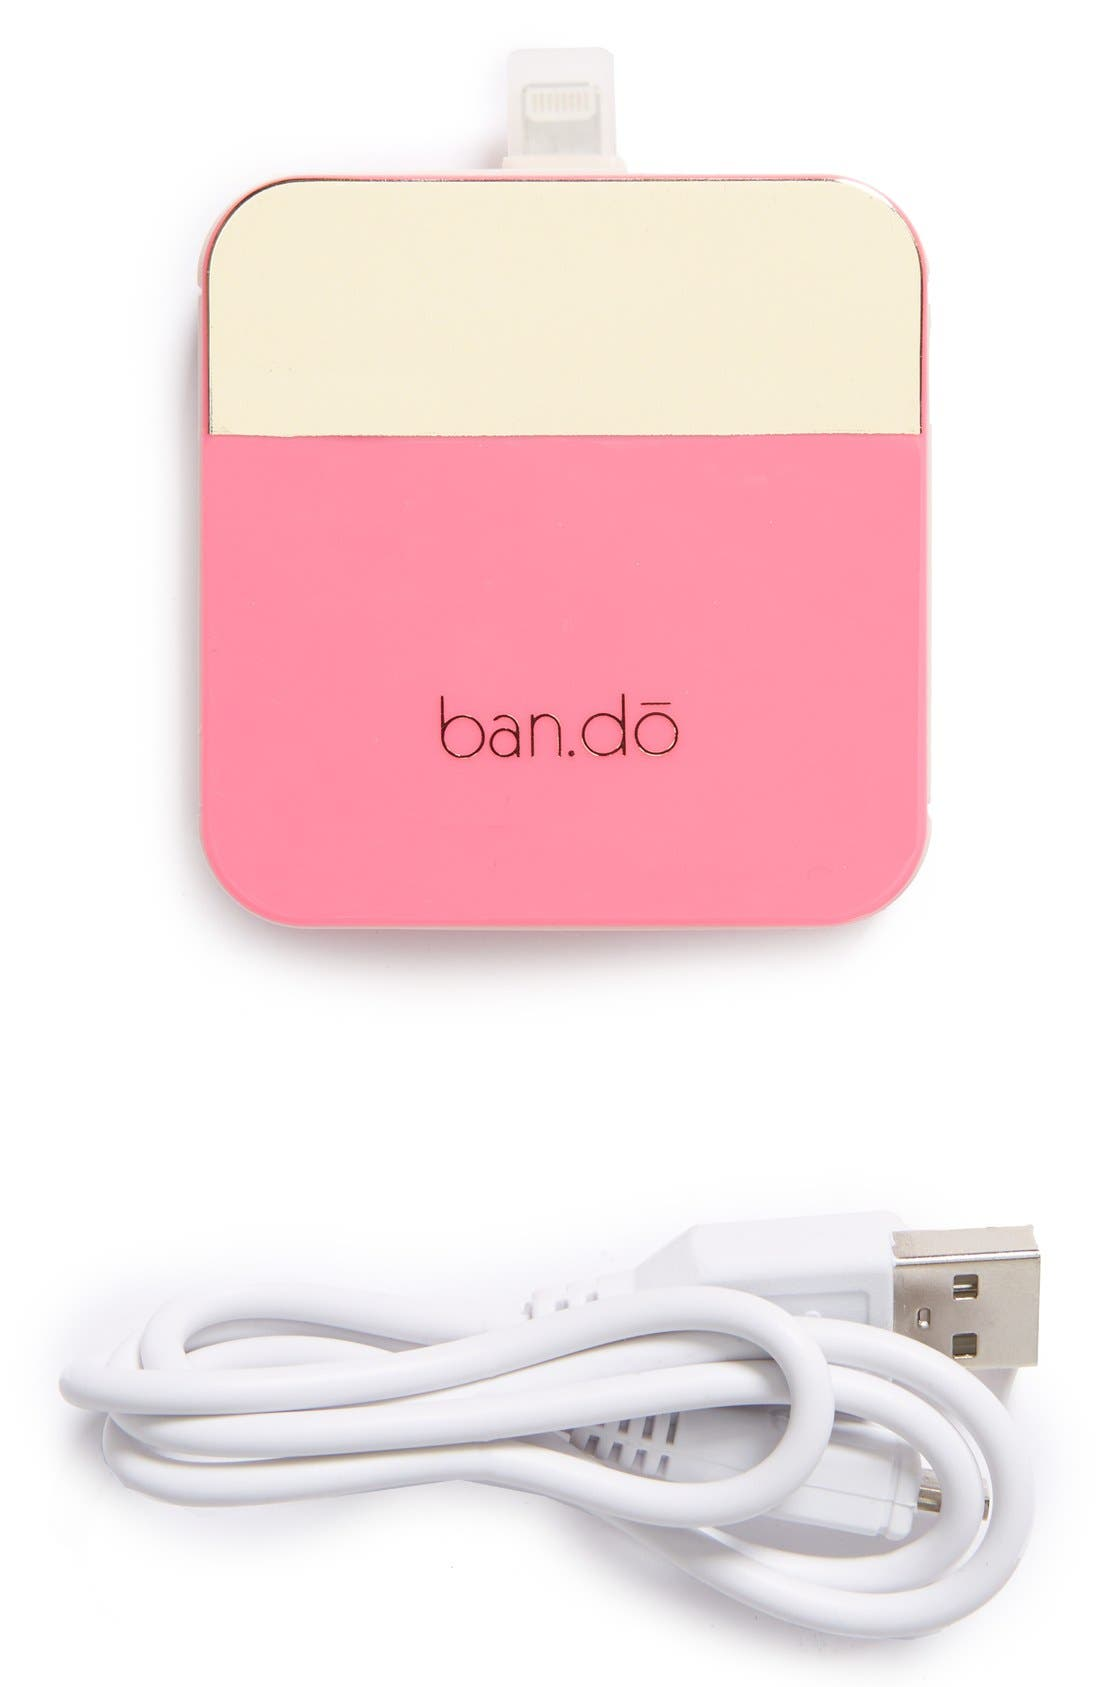 'Back Me Up' iPhone 5 Charger,                         Main,                         color, Pink/ Metallic Gold